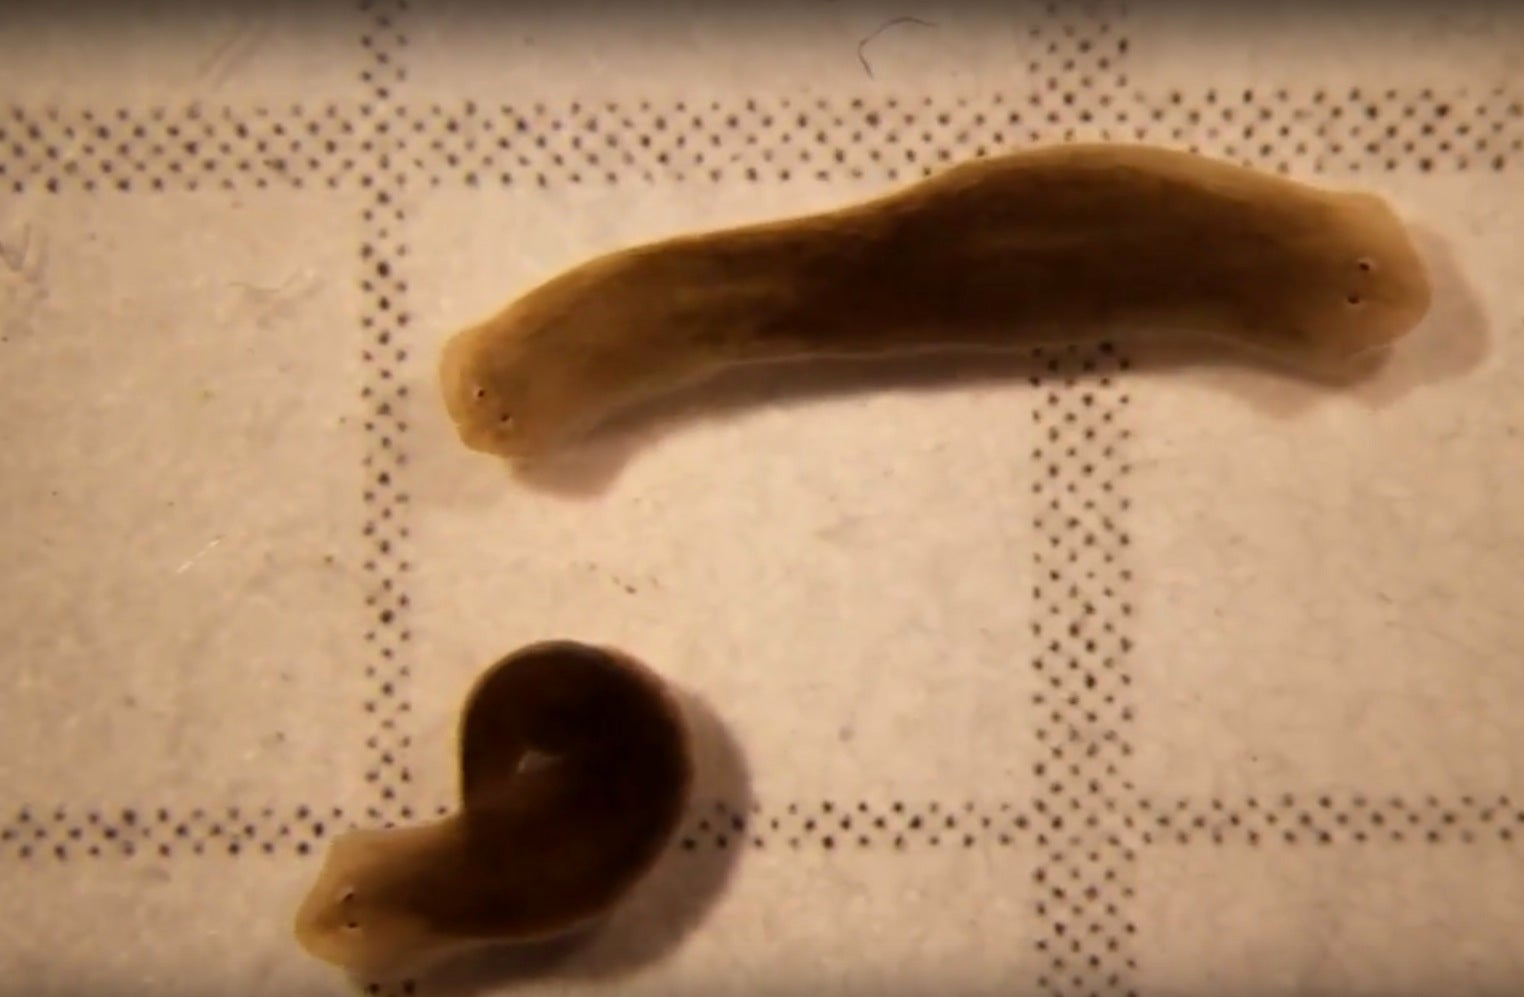 two-headed worm